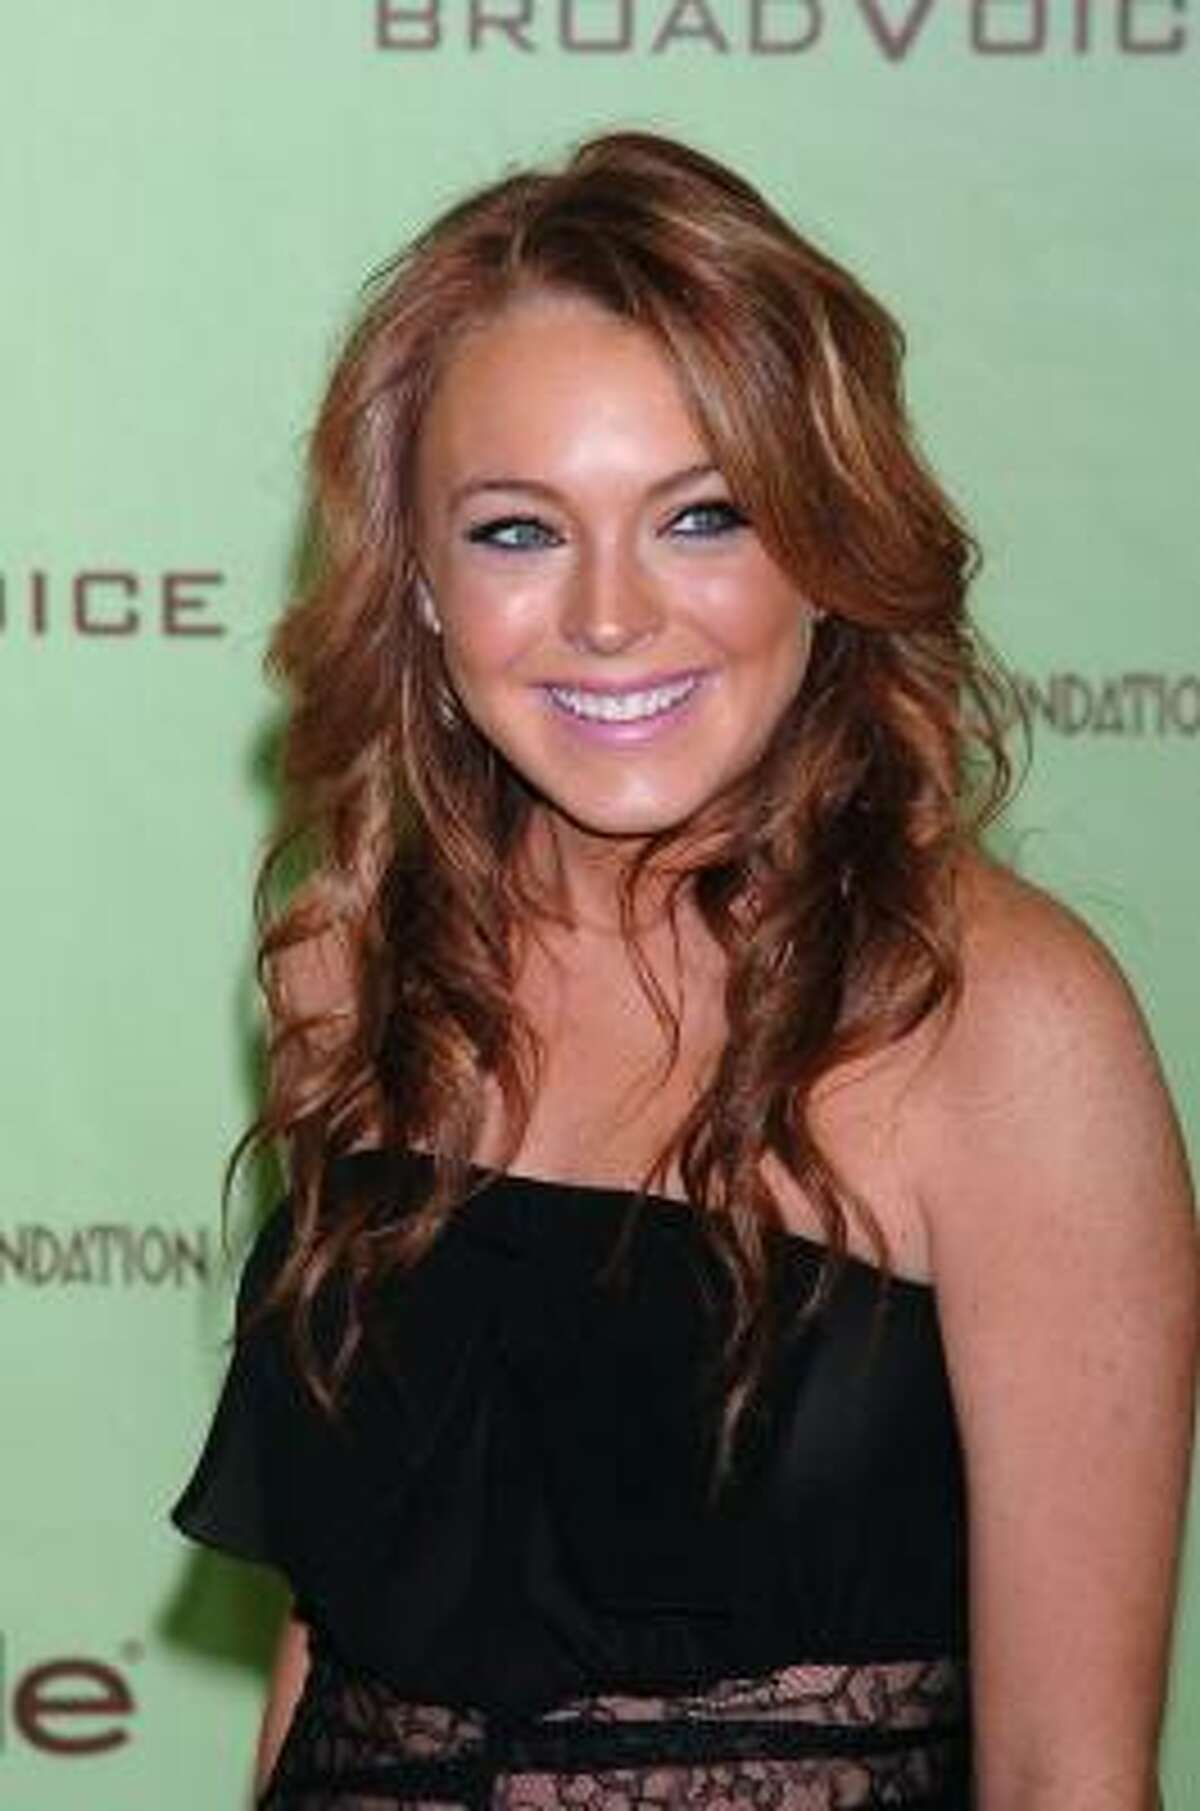 A healthy-looking Lindsay Lohan is seen here in 2004, the same year she appeared in Mean Girls and Confessions of a Teenage Drama Queen. Find healthy weight-loss tips and support at Losing It. Click here to join.